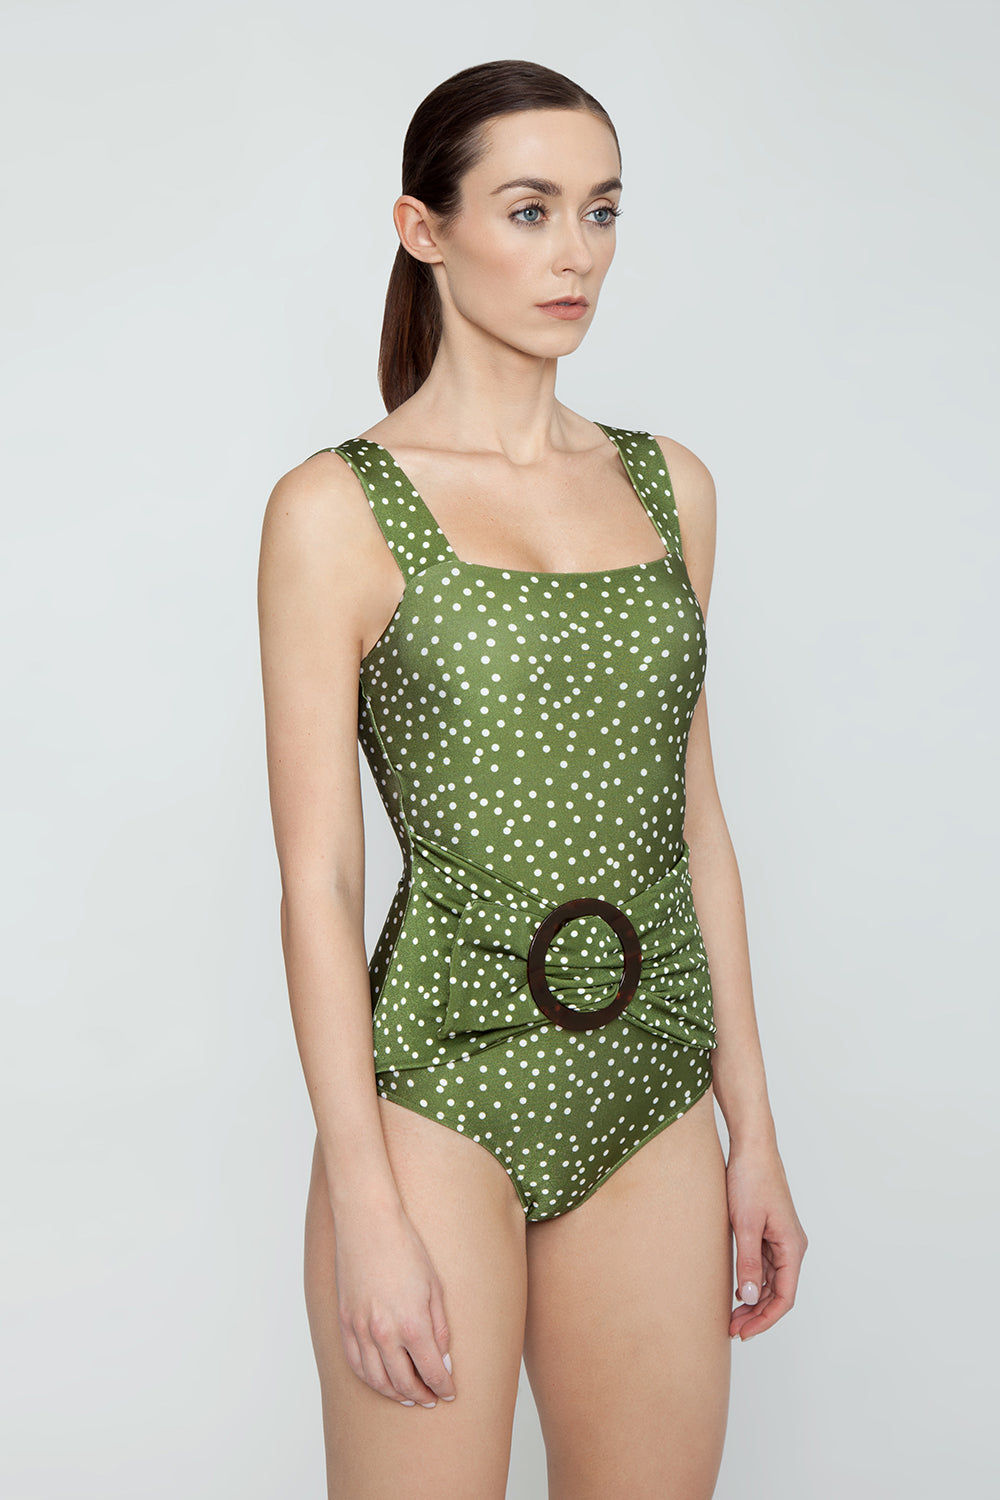 ADRIANA DEGREAS Square Neck Hoop Buckle One Piece Swimsuit - Mille Punti Army Green Polka Dot Print One Piece | Mille Punti Army Green Polka Dot Print| Adriana Degreas Hoop One Piece Swimsuit - Mille Punti Green Dot Print Square neckline Thick shoulder straps  Twisted bodice  Tortoise hoop detail  Moderate-full coverage  Side View